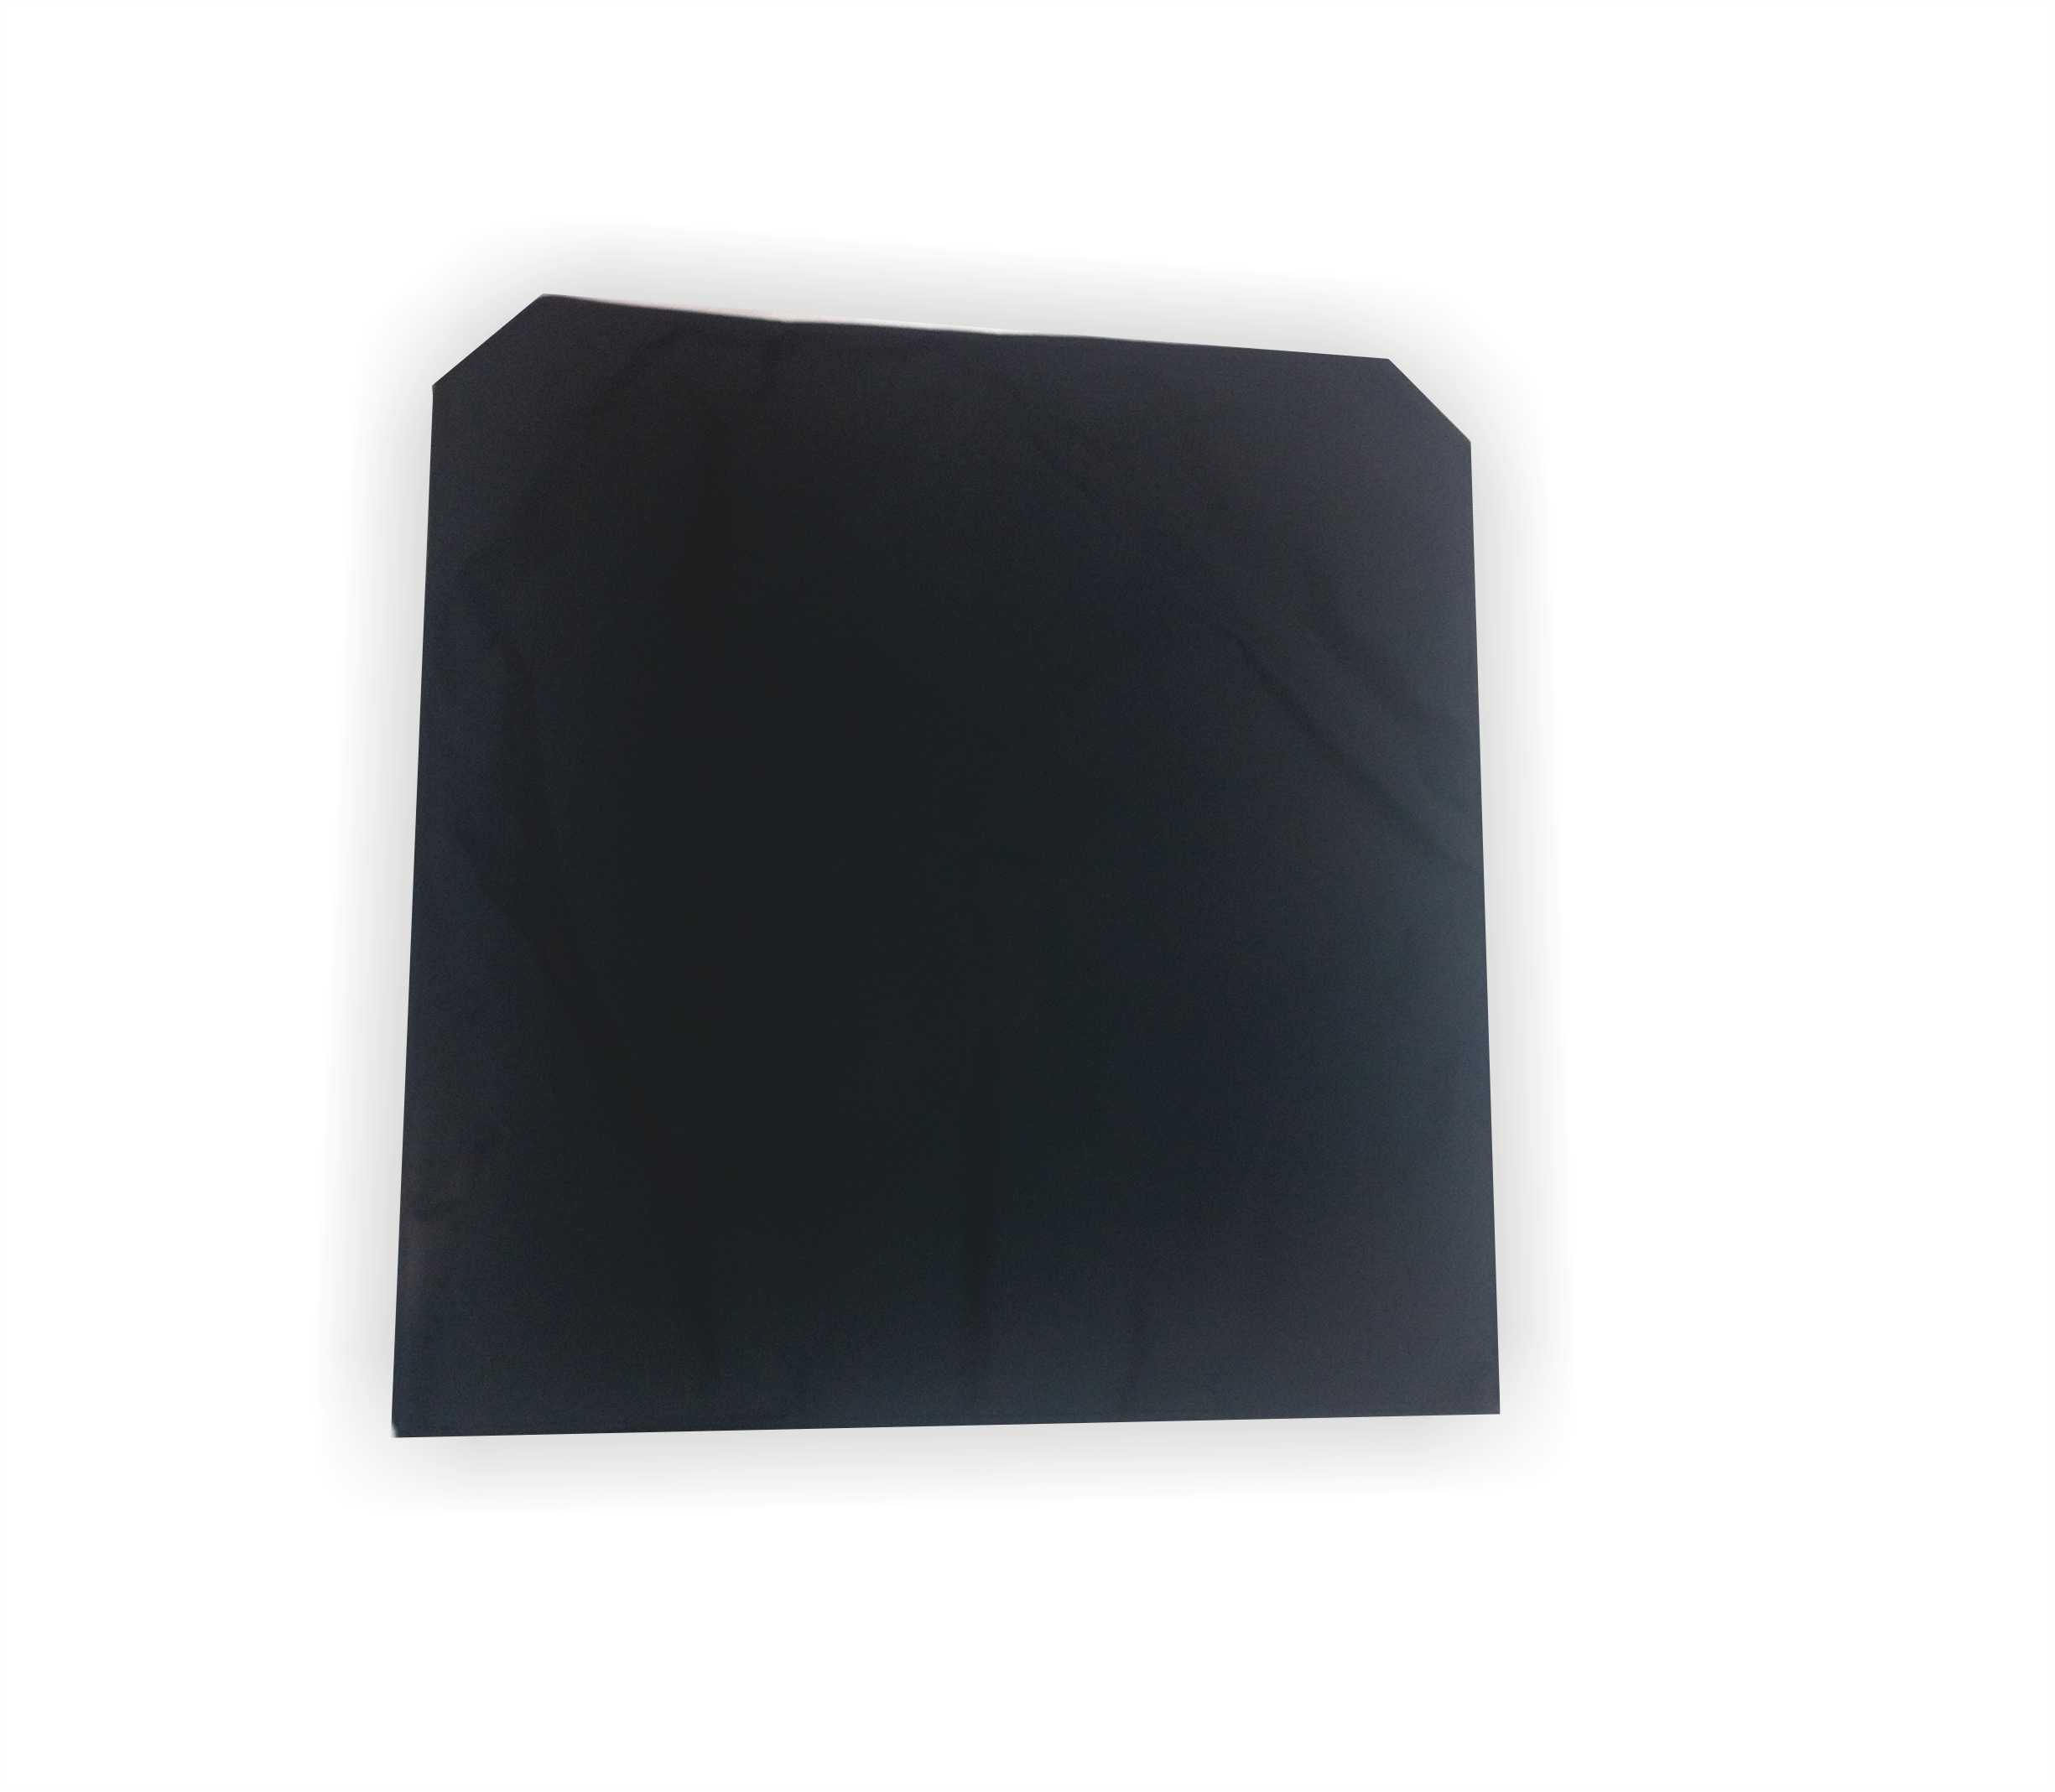 Black Nylon Designed for Full Size Industry Standard Microscopes. 22'' Wide X 22'' High by Viziflex